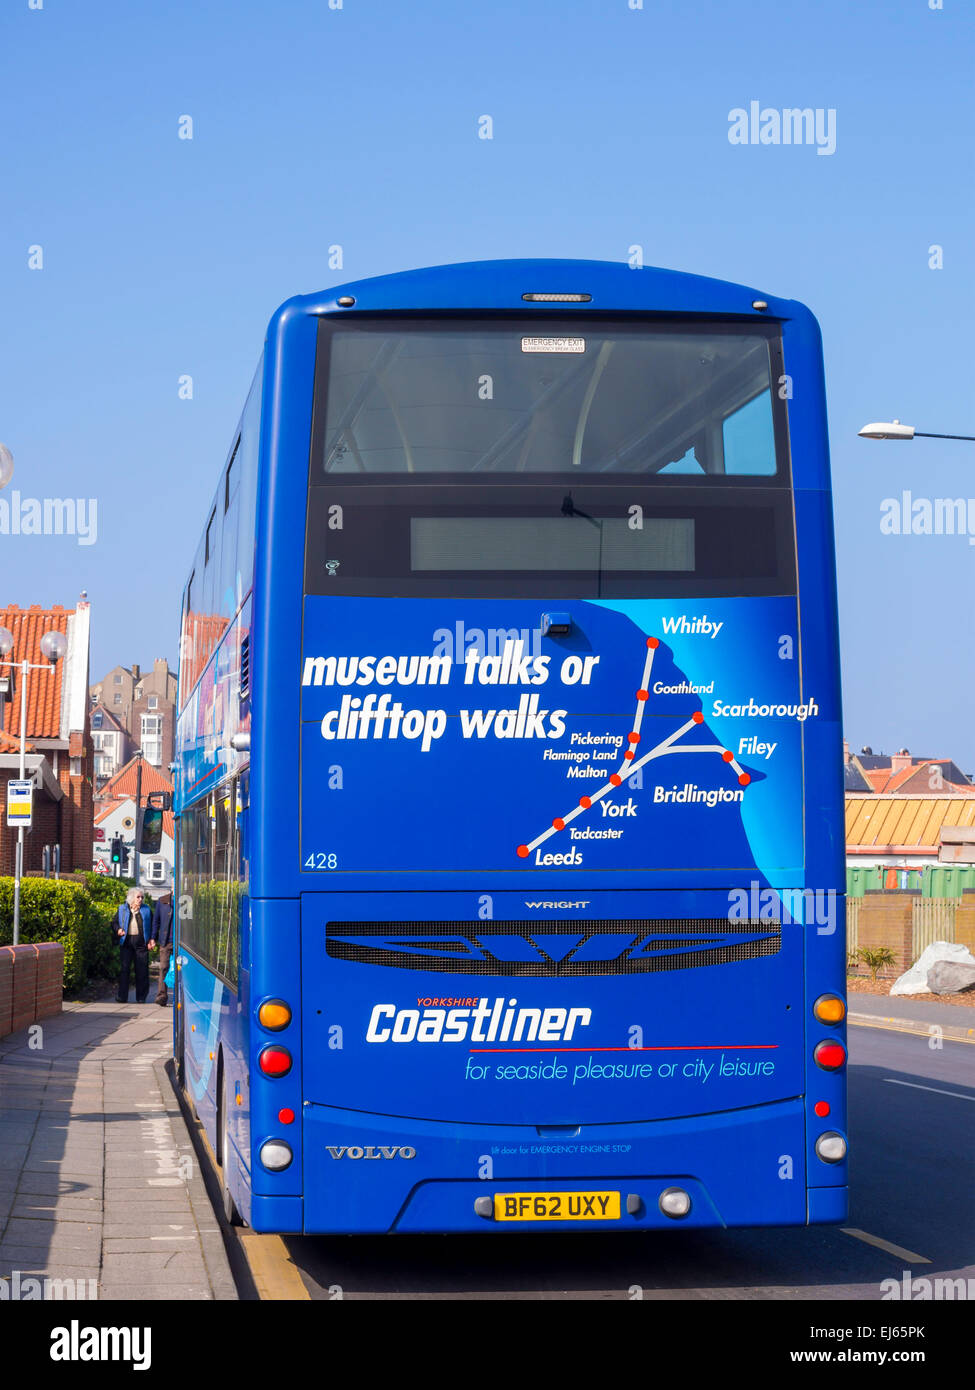 Rear of a Coastliner bus with a map showing the routes from Leeds